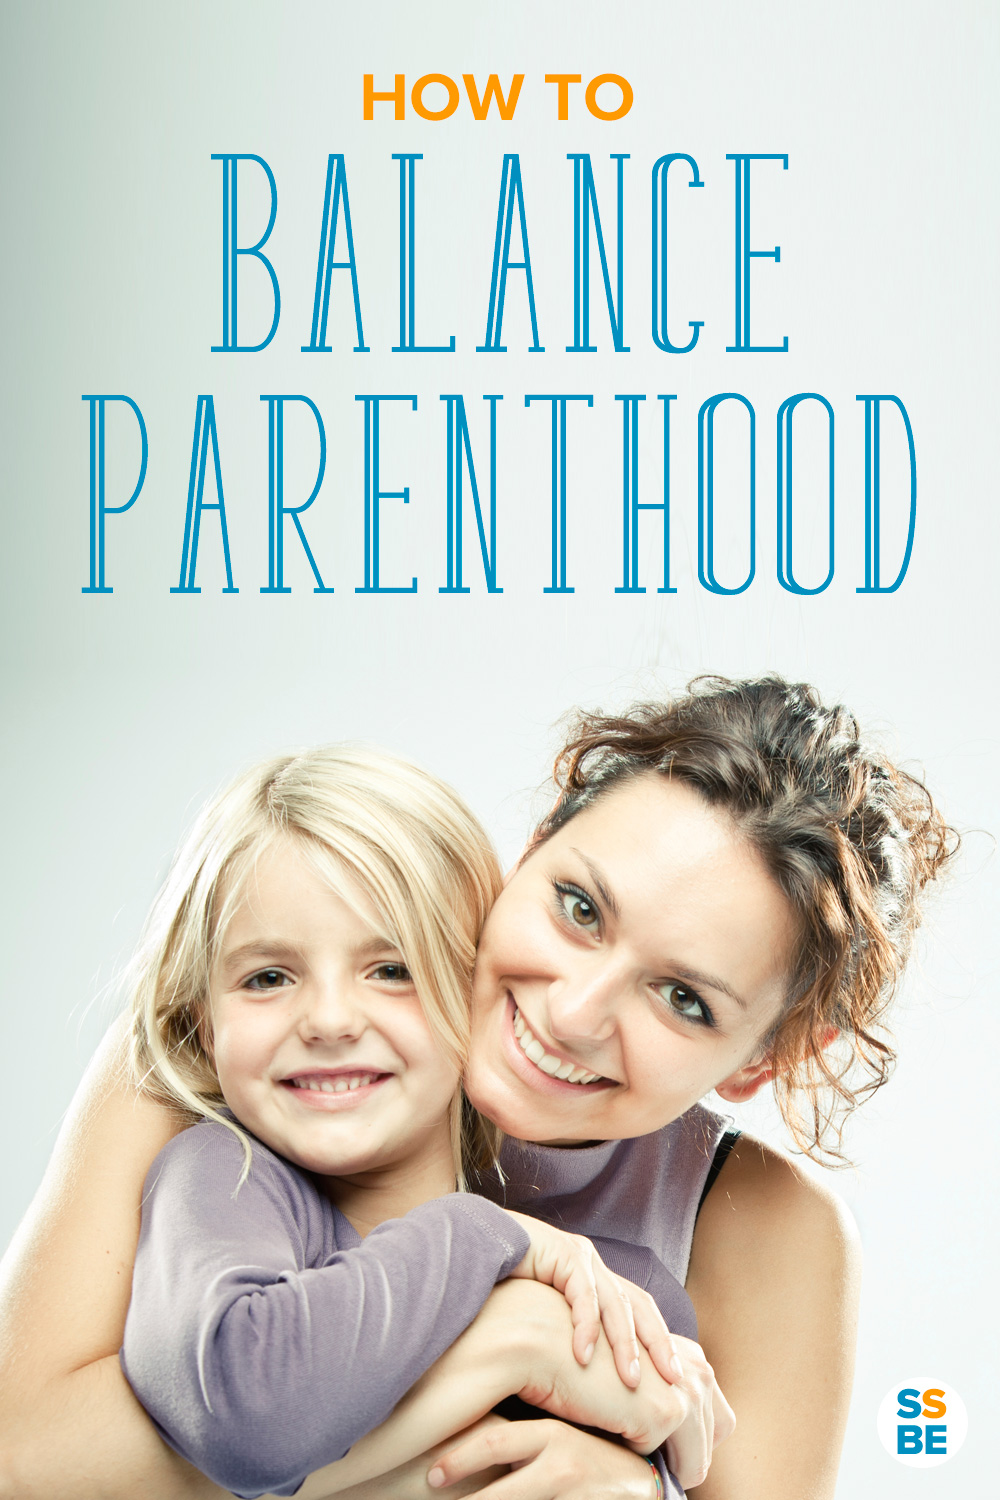 How to Balance Parenthood with the Rest of Your Life